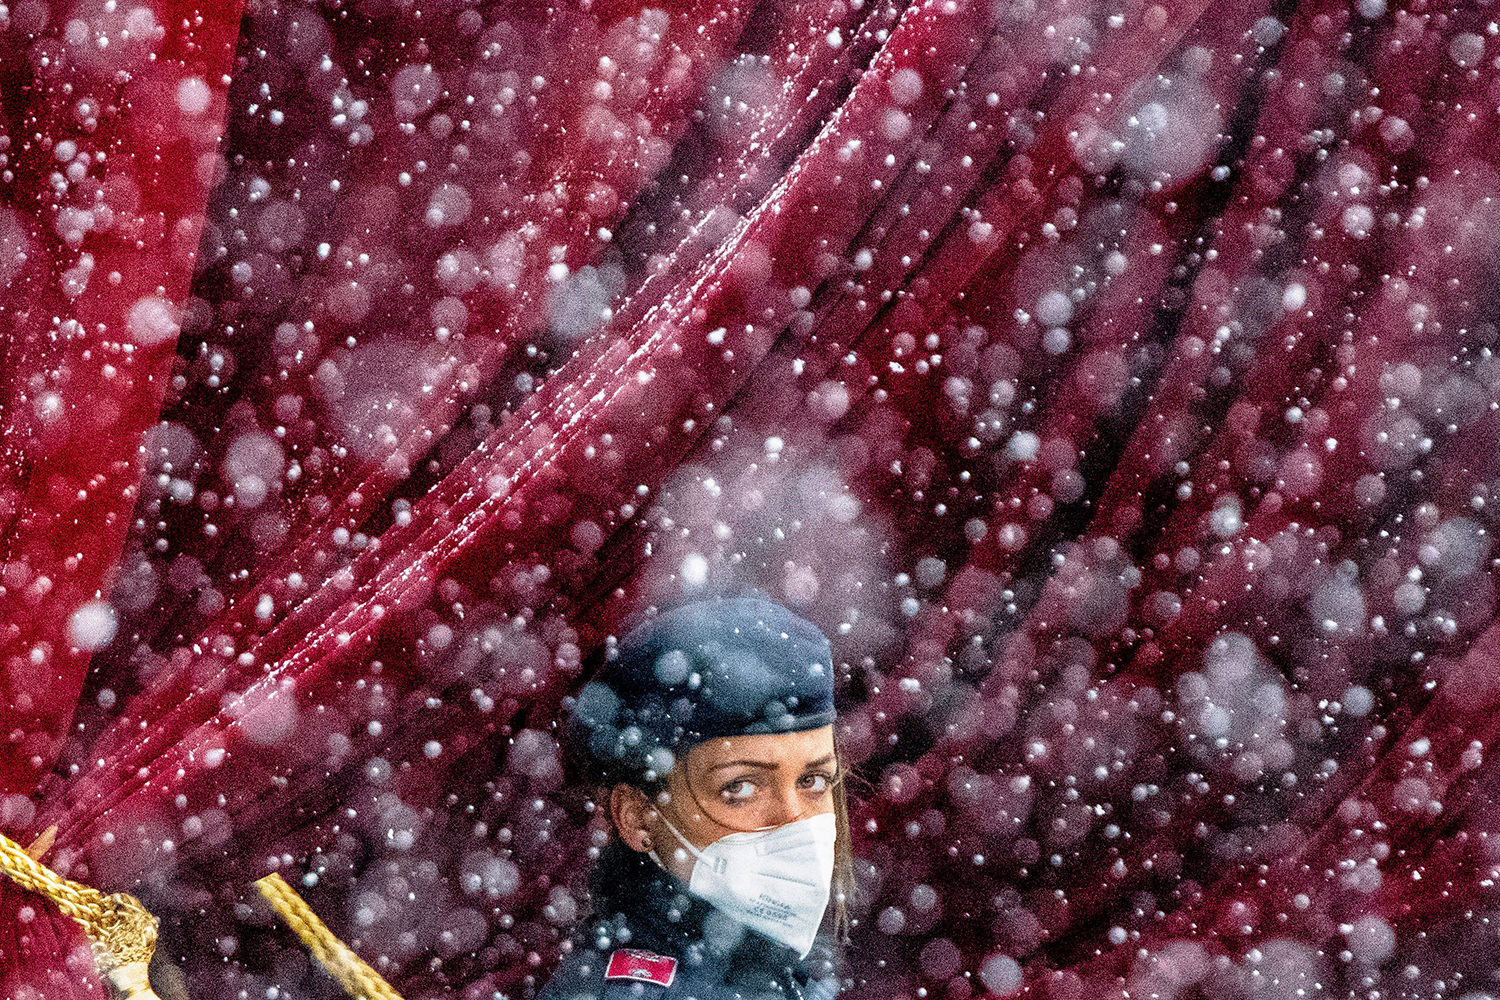 Snow falls as a police officer stands guard near the Grand Hotel in Vienna, where diplomats of the EU, China, Russia, and Iran were holding talks, on April 6. JOE KLAMAR/AFP via Getty Images